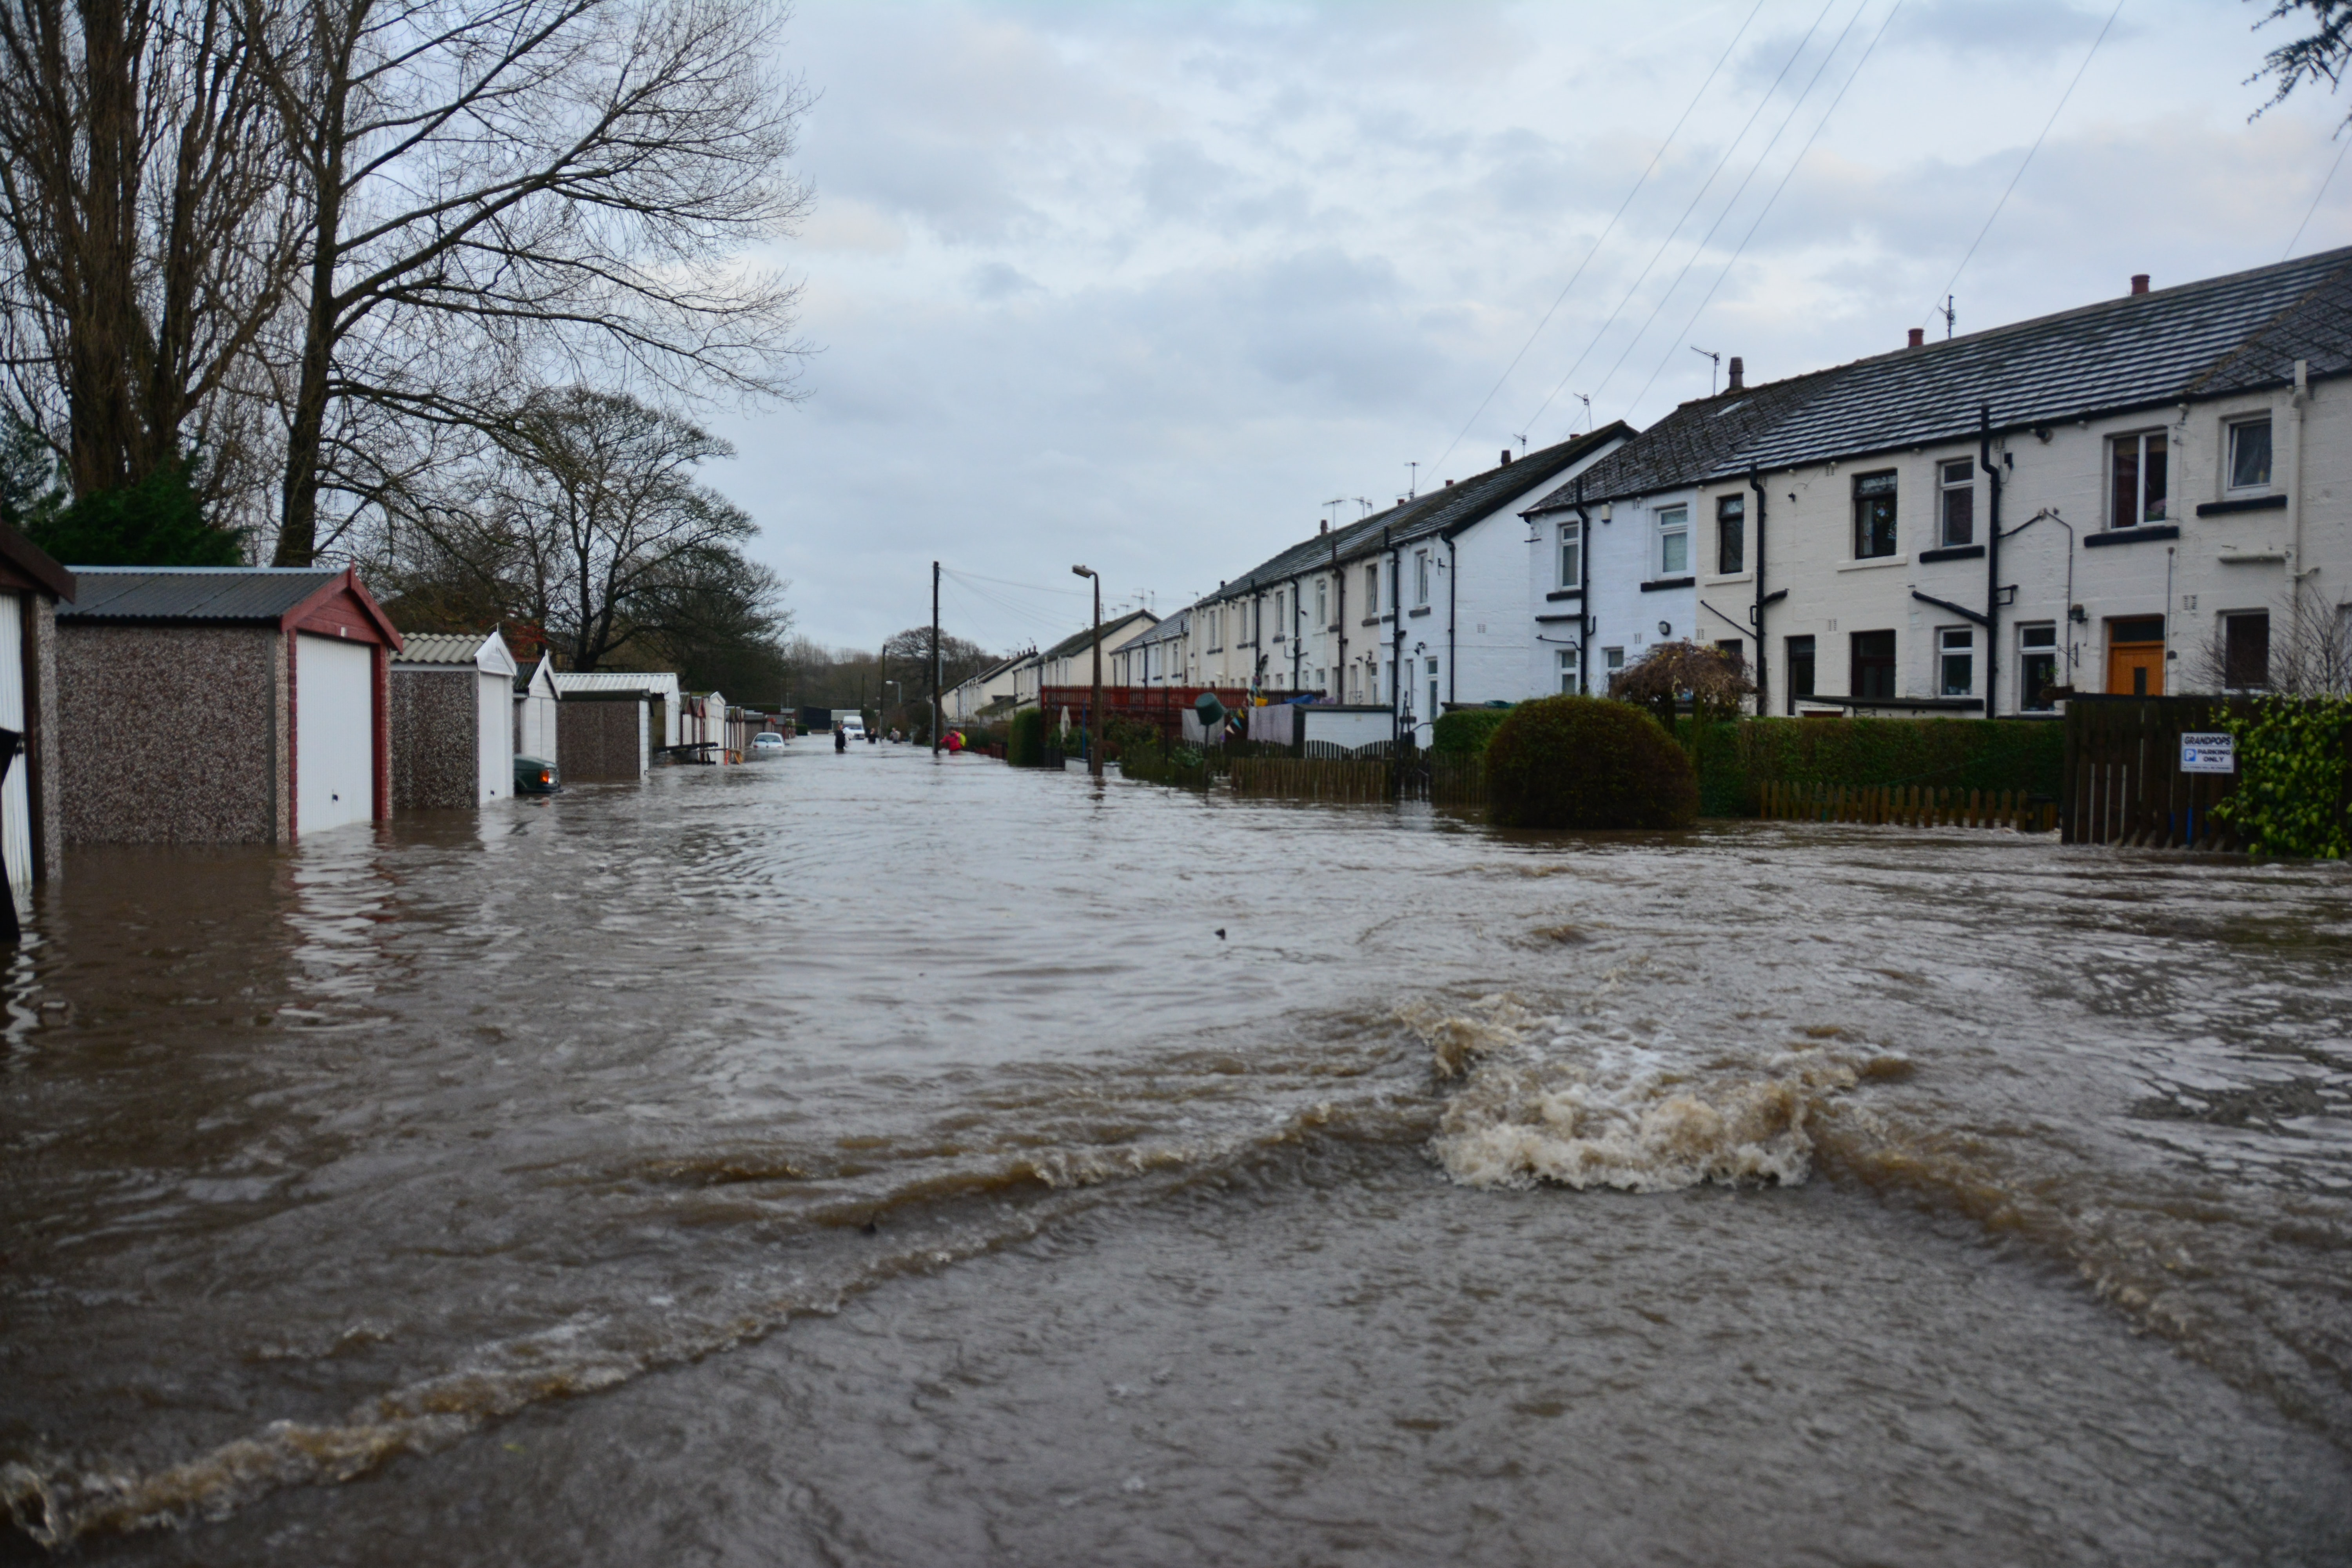 A flooded street of terrace houses